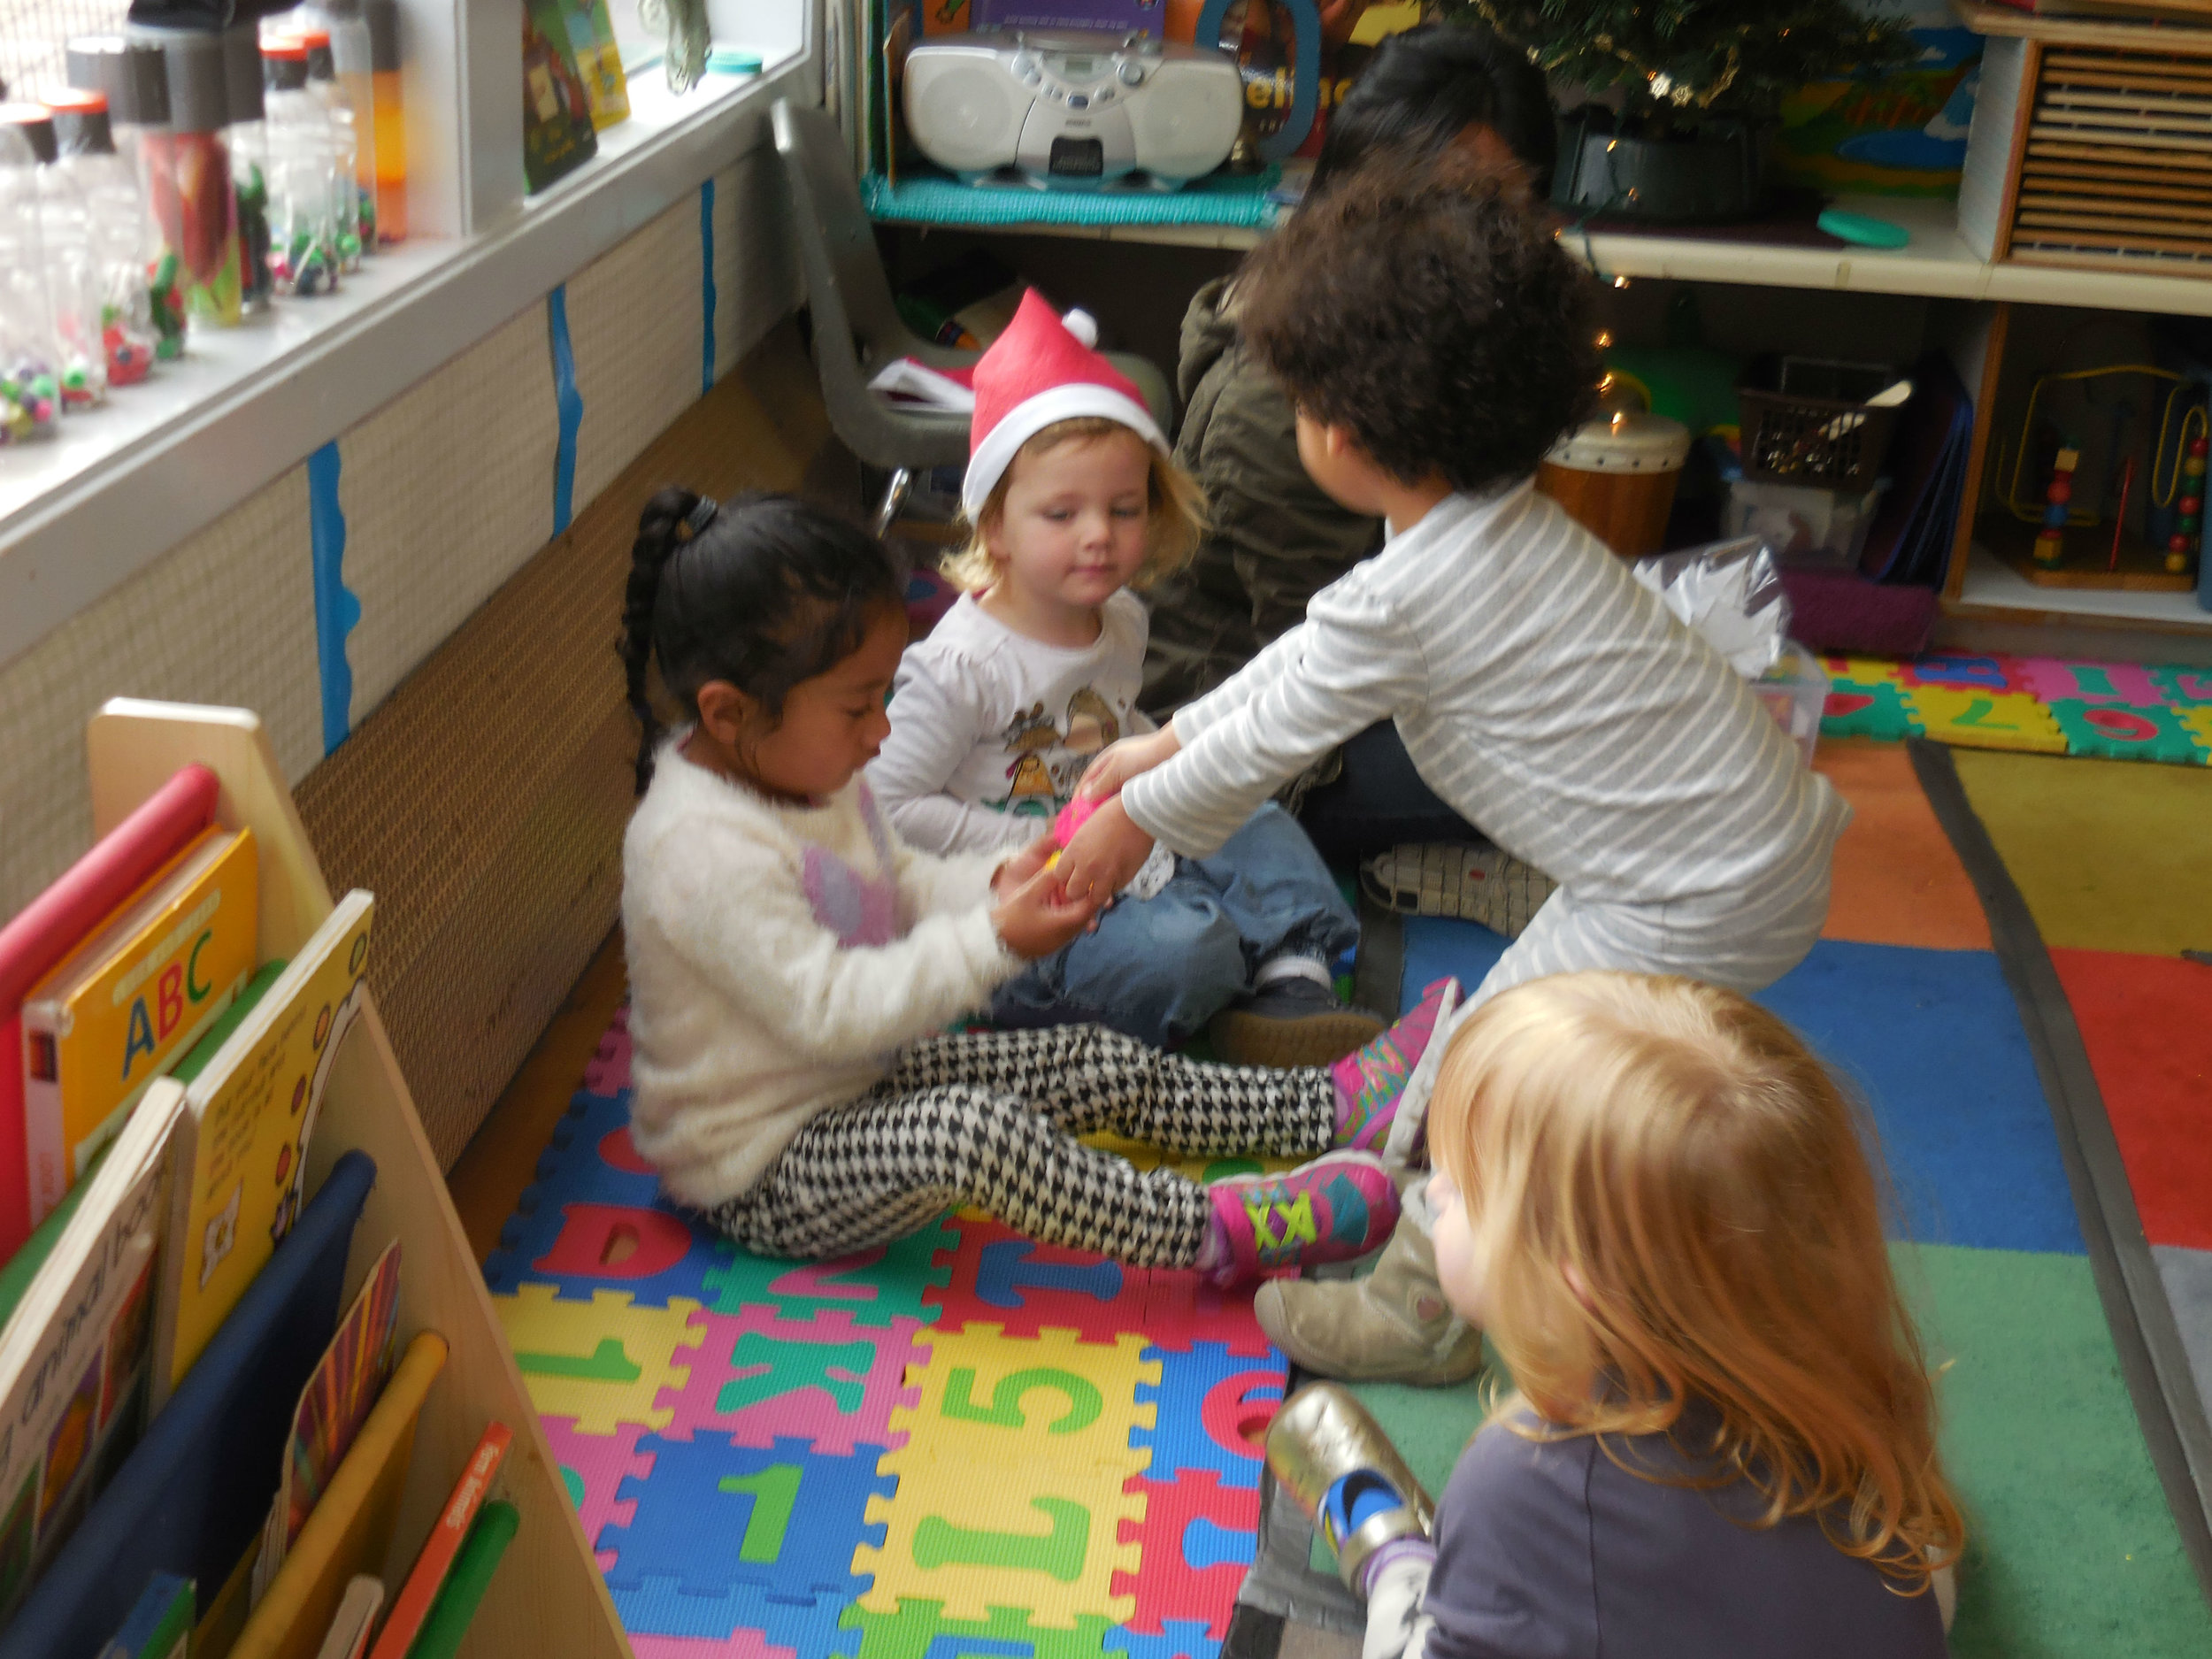 Handing their toys to one another to share!#.jpg